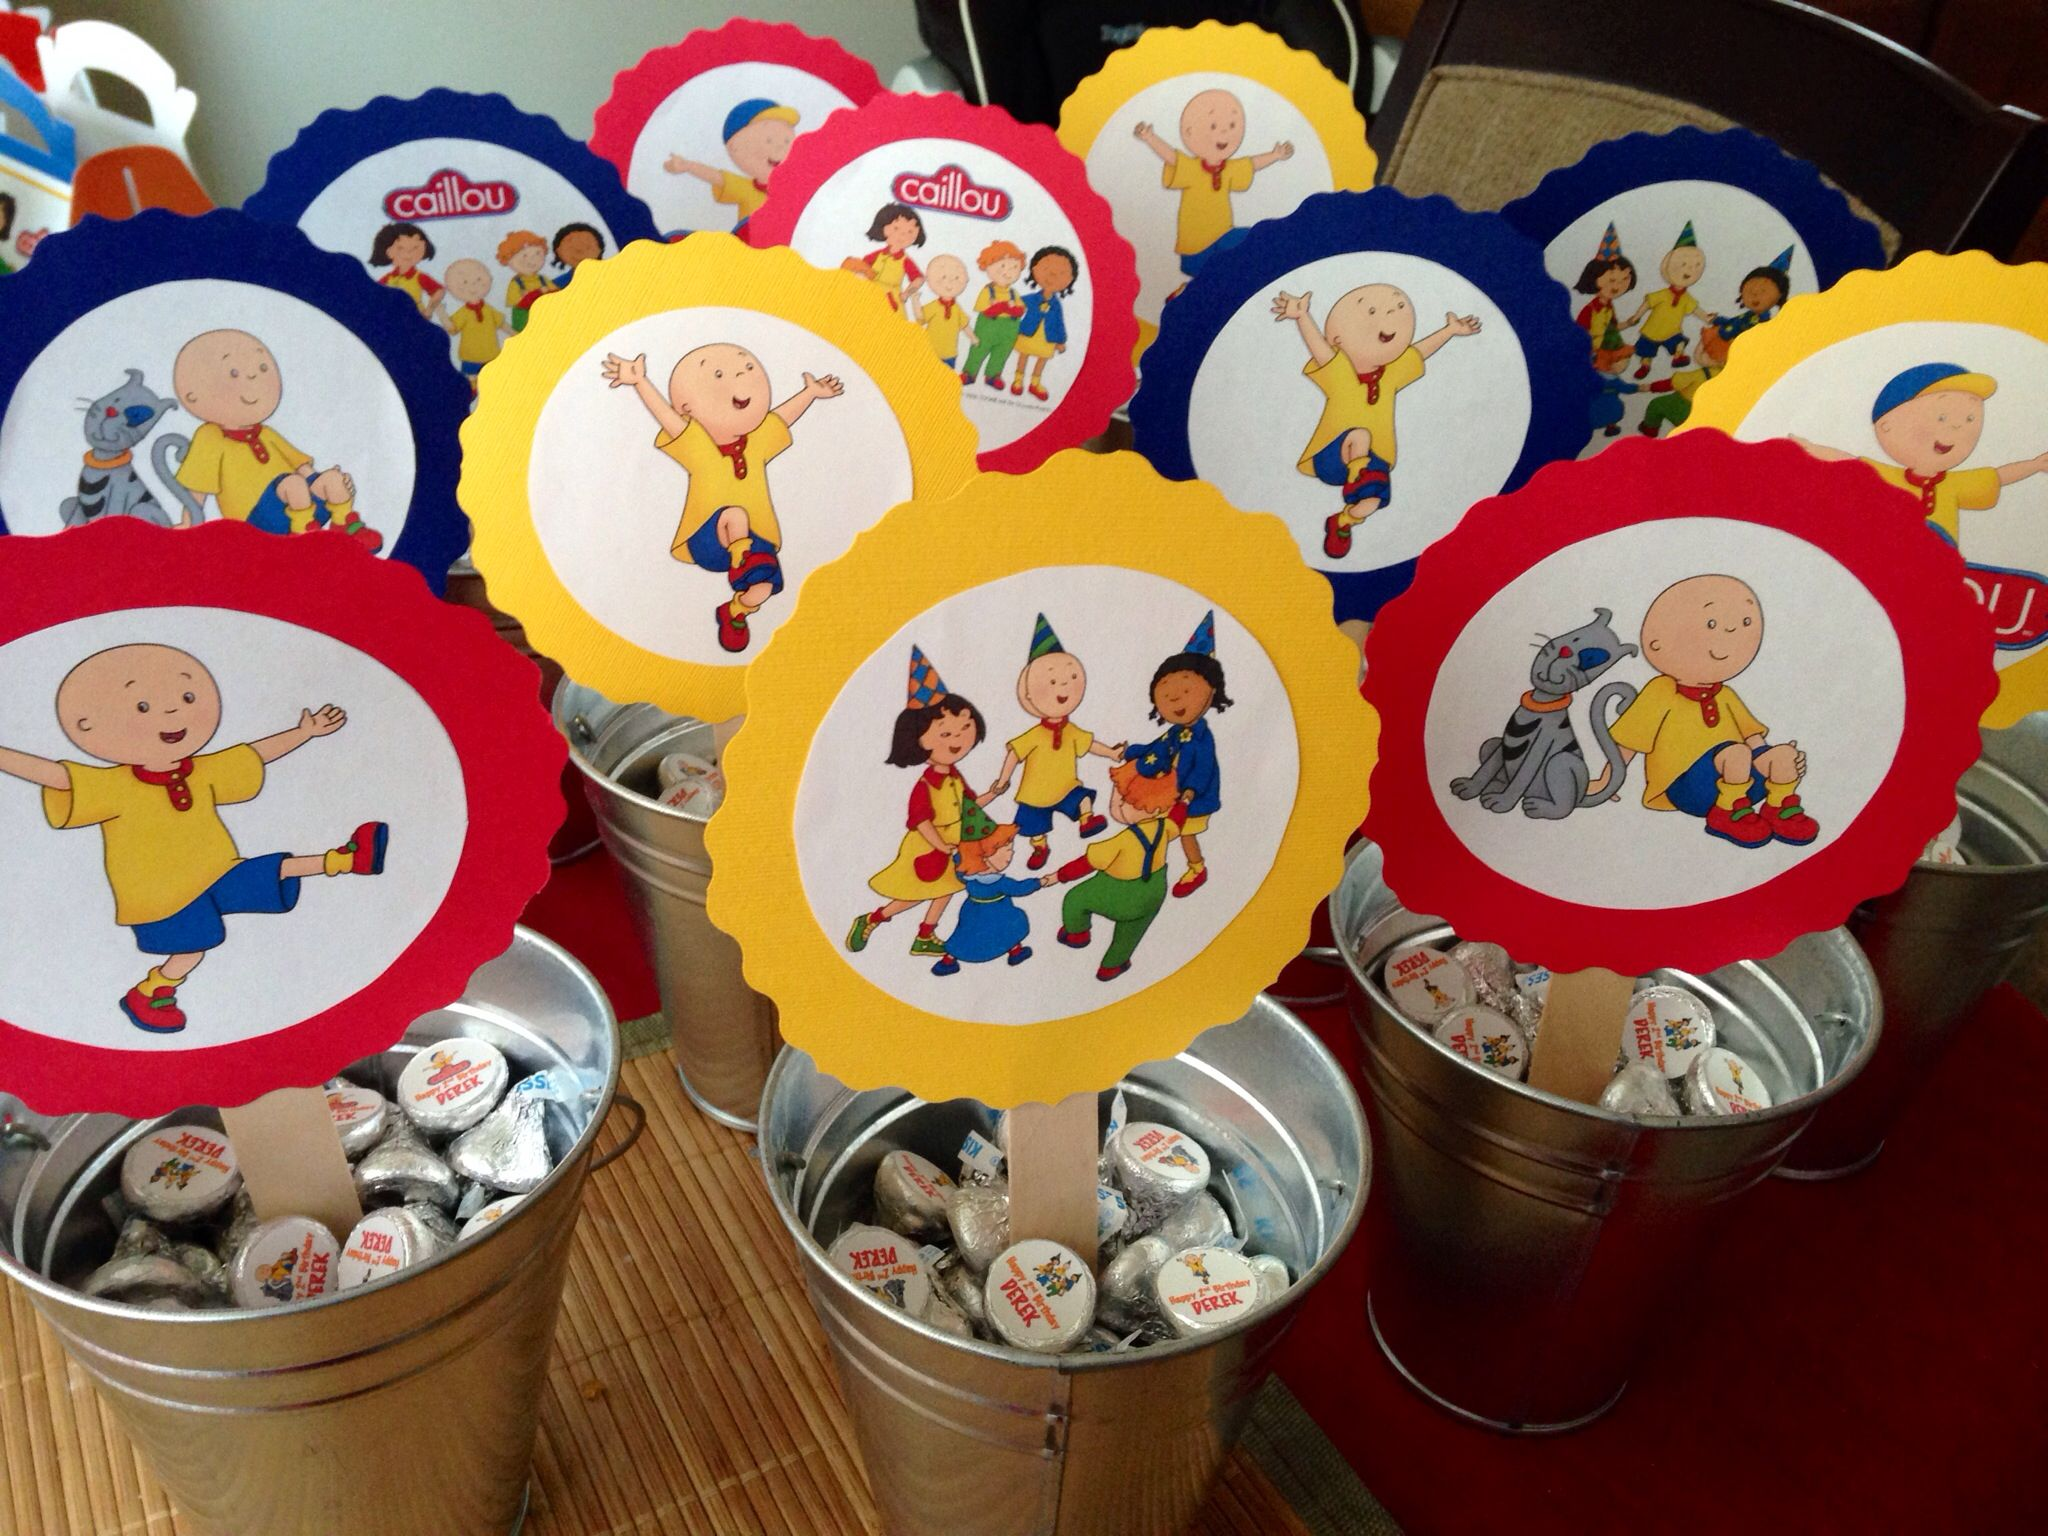 Caillou Birthday Party Centerpieces